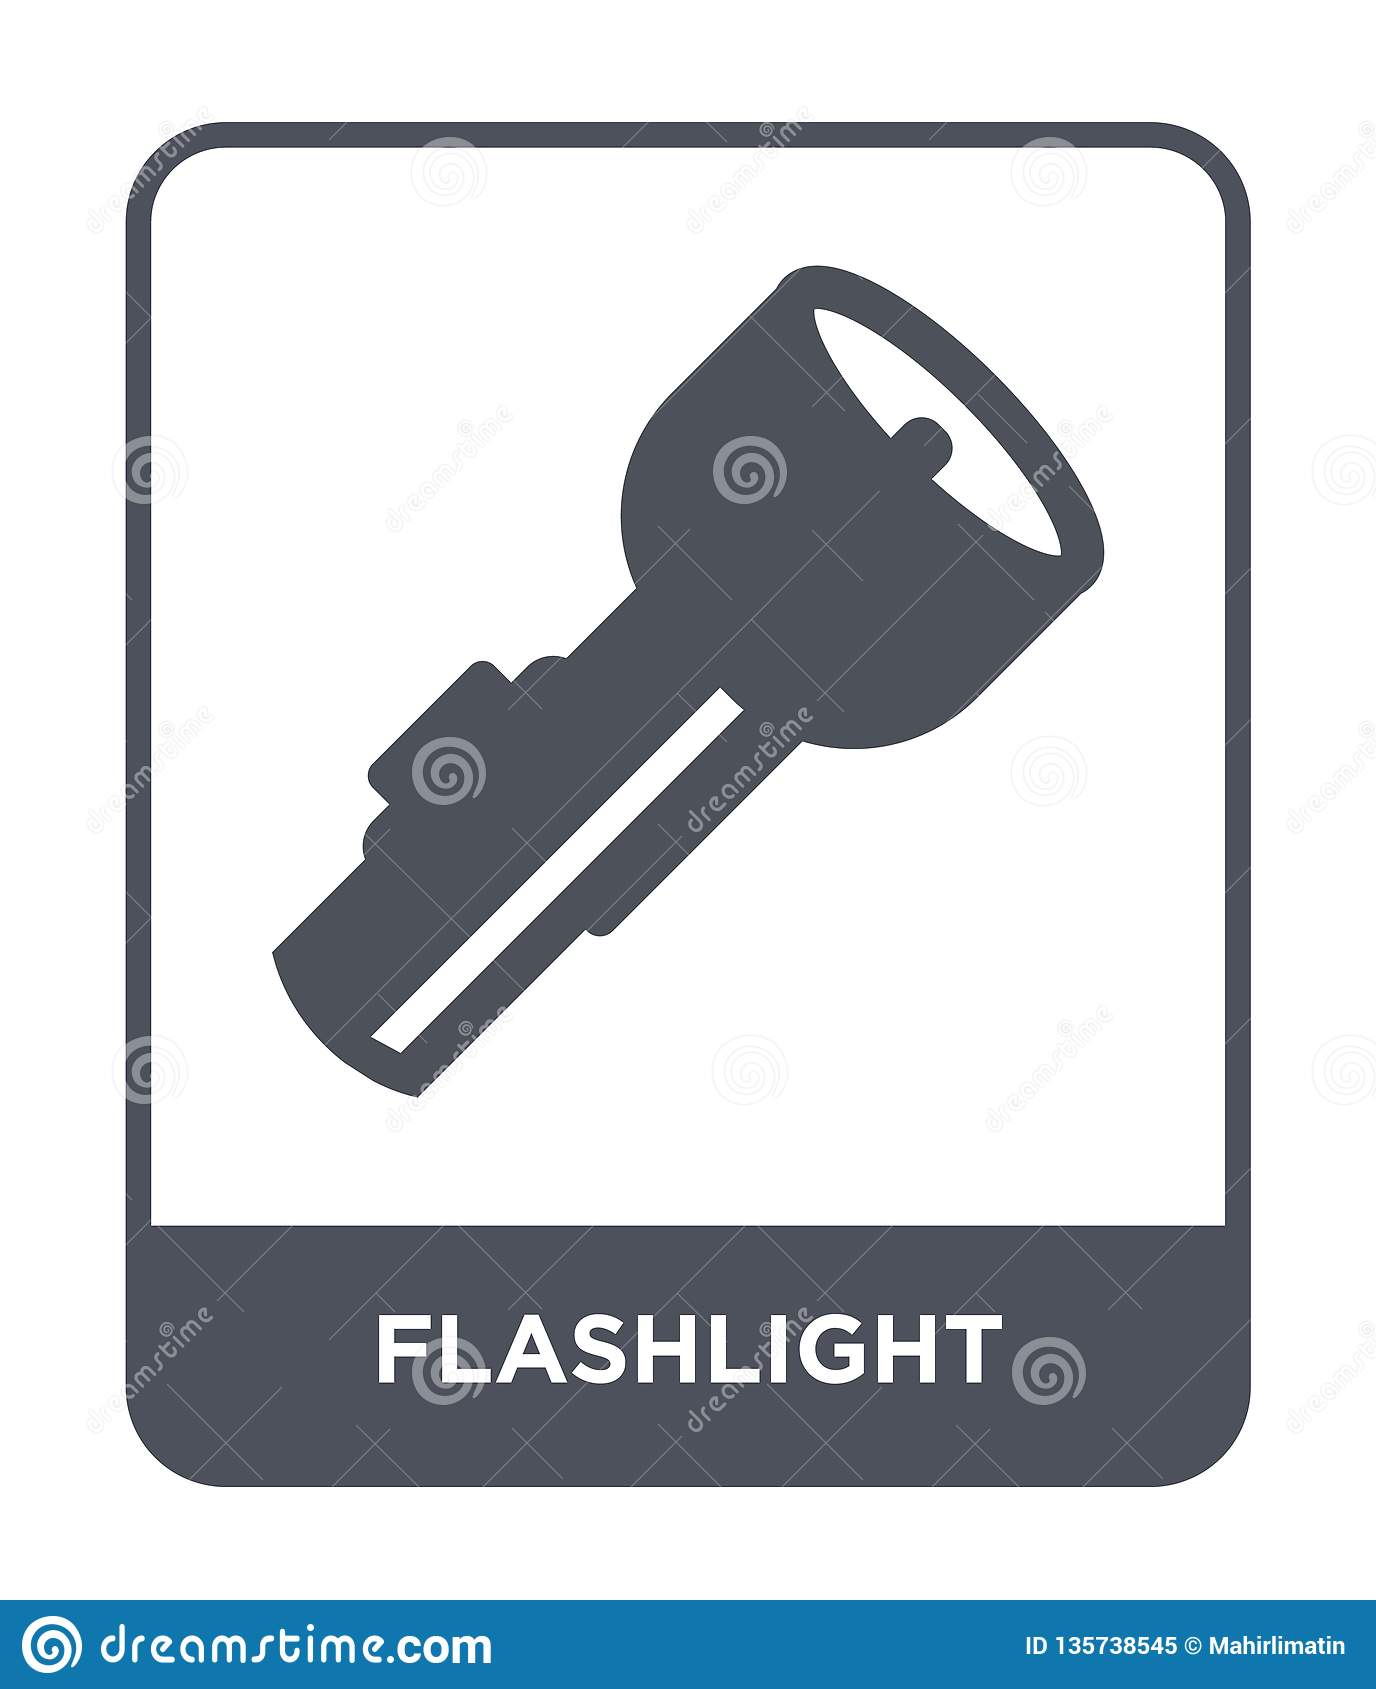 flashlight icon in trendy design style. flashlight icon isolated on white background. flashlight vector icon simple and modern